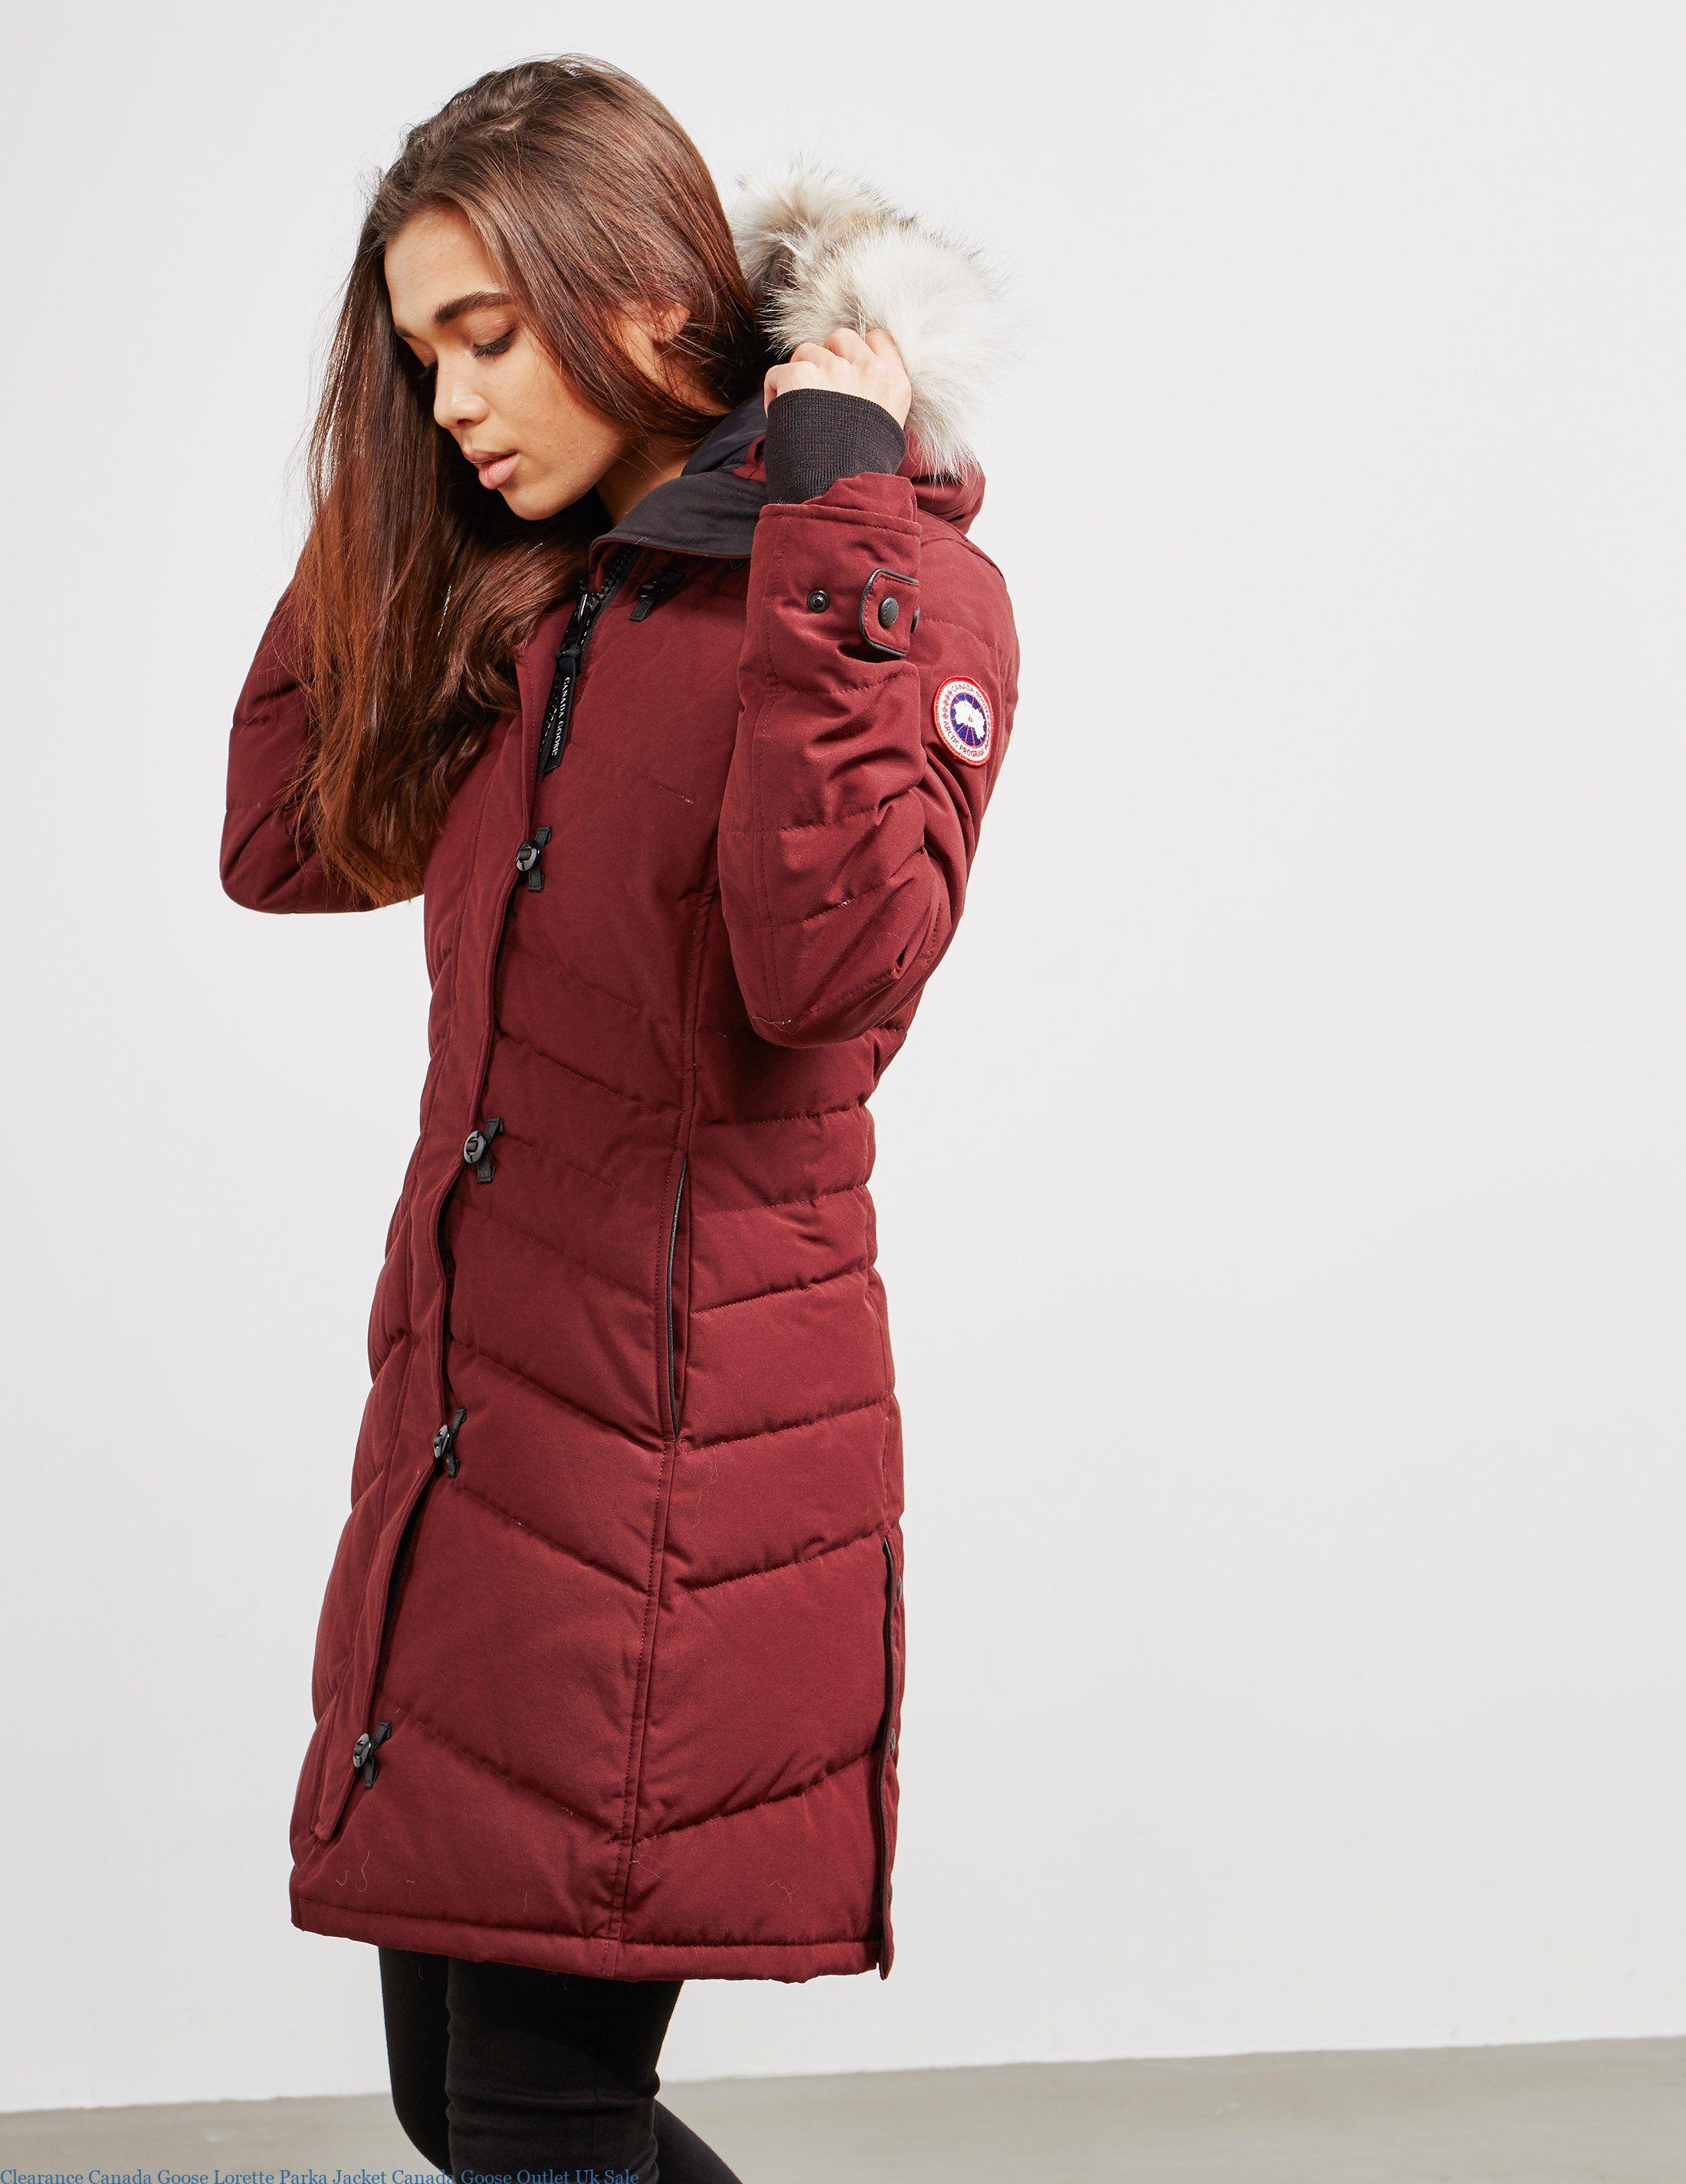 Clearance Canada Goose Lorette Parka Jacket Canada Goose Outlet Uk Sale – Canada  Goose Outlet™ – Cheap Canada Goose Jackets Online Sale 829f435bc